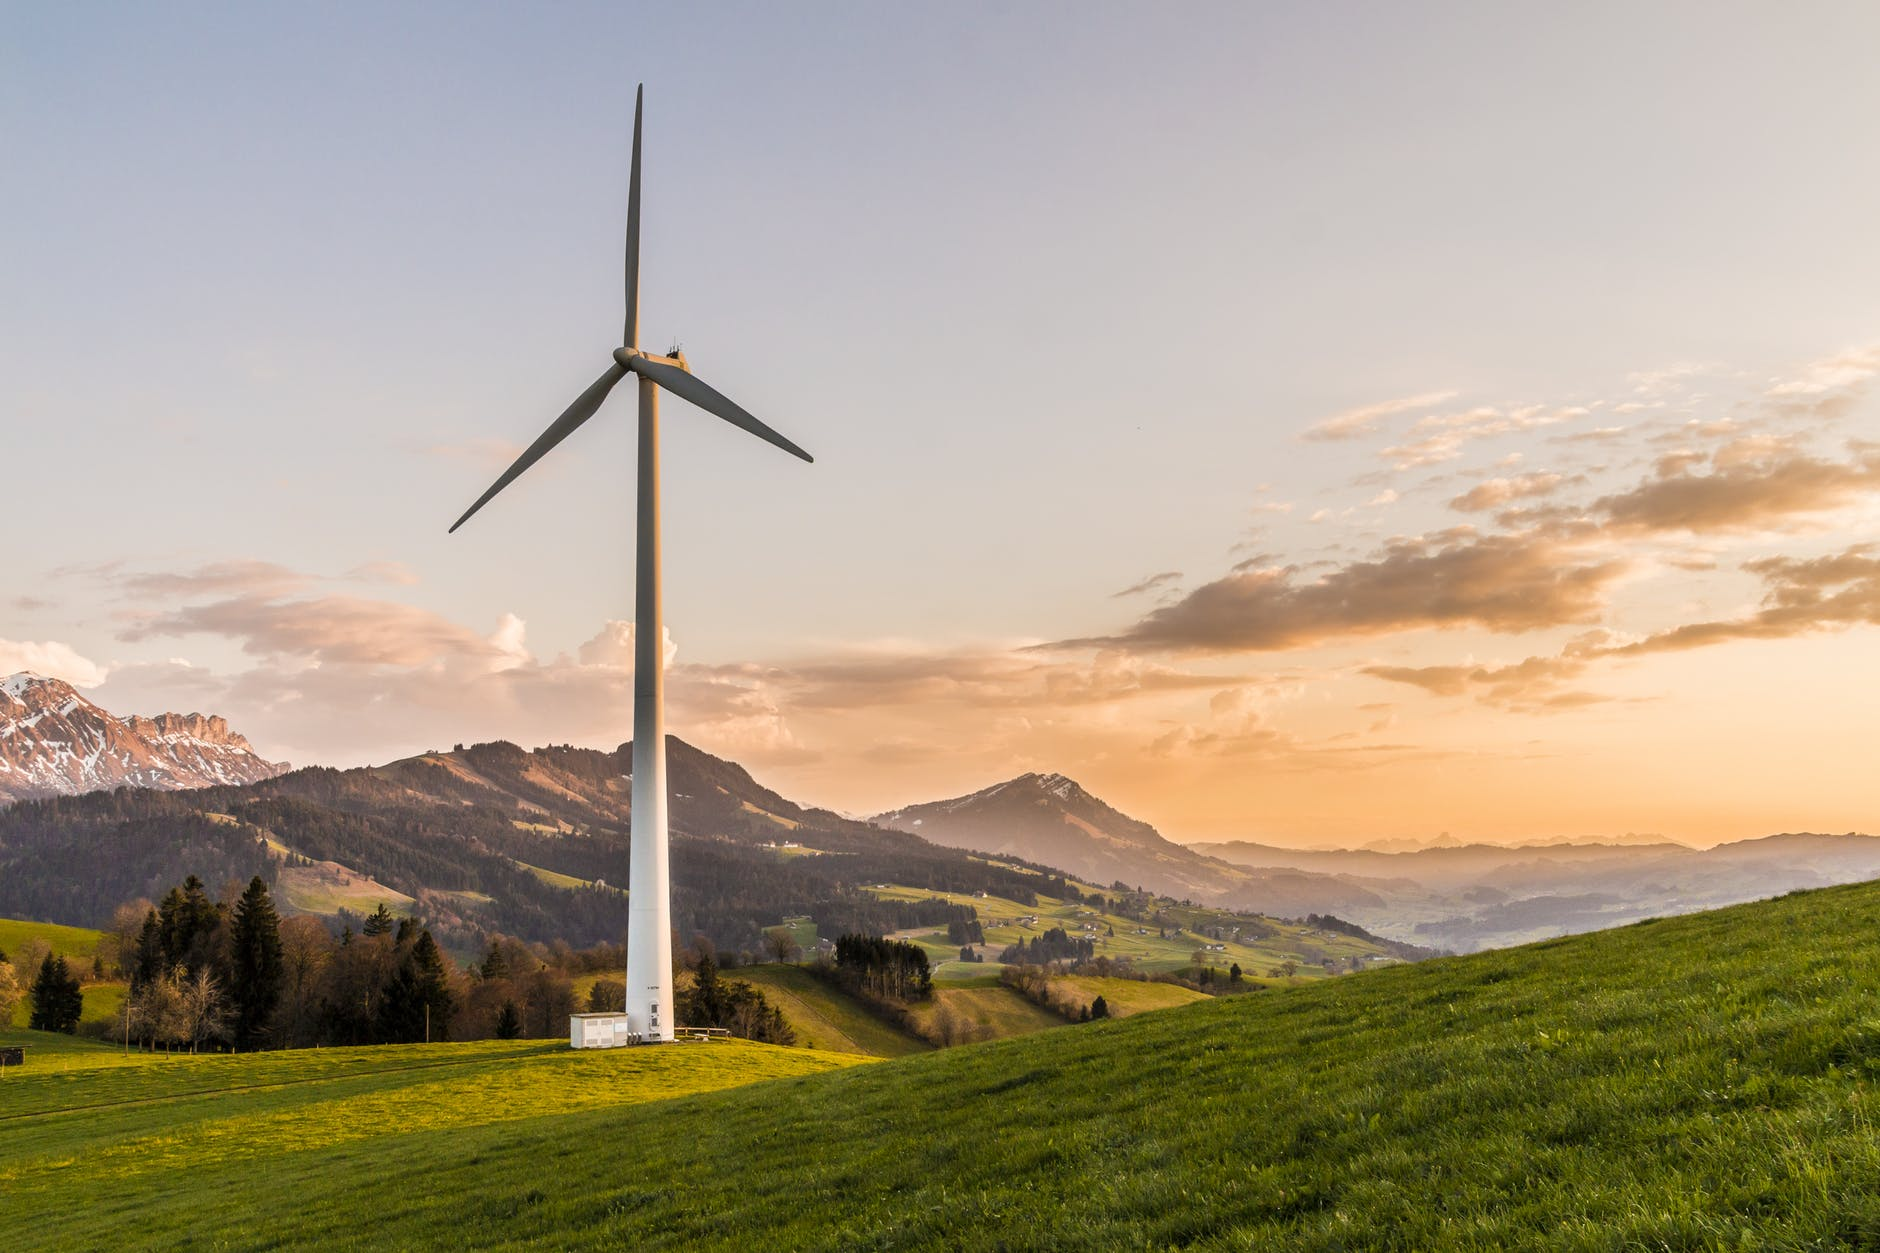 Renewable energy has the potiental to lead Alberta and the world to a cleaner, brighter future